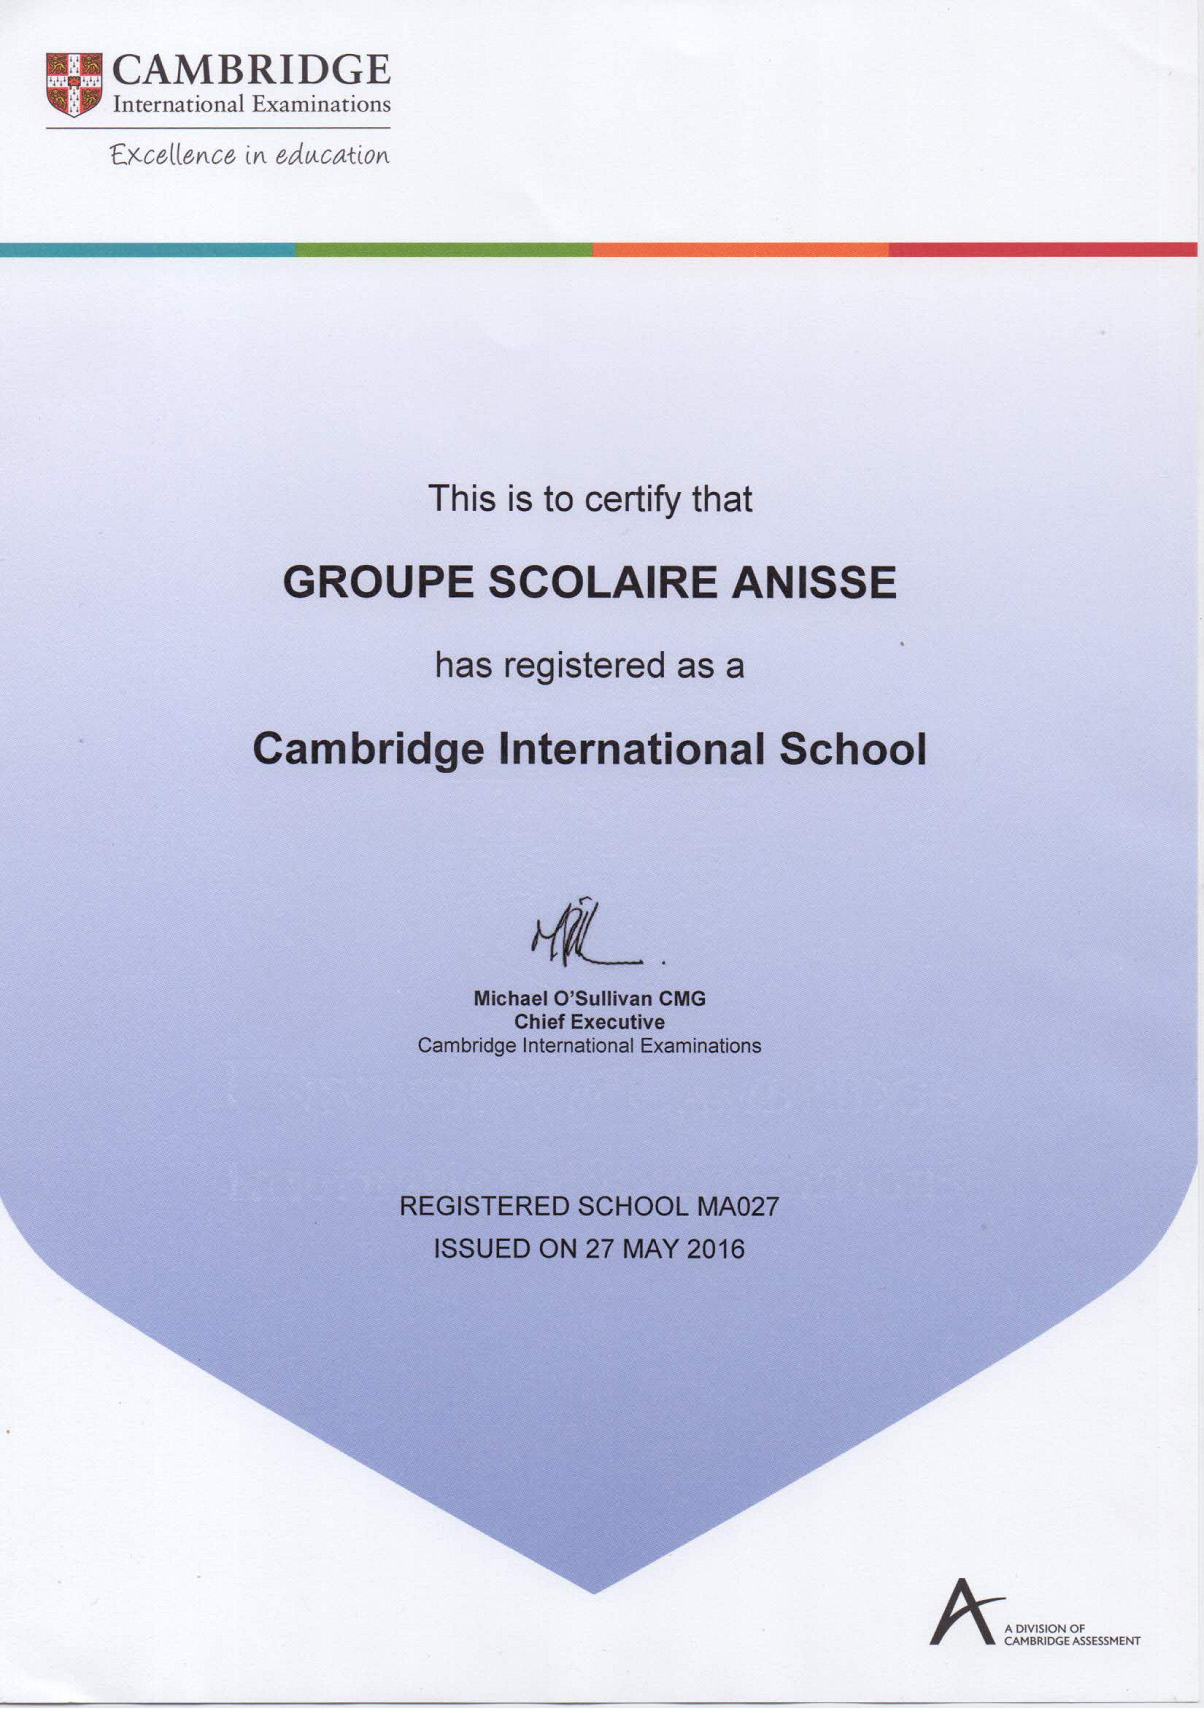 Gsa cambridge International Examinations